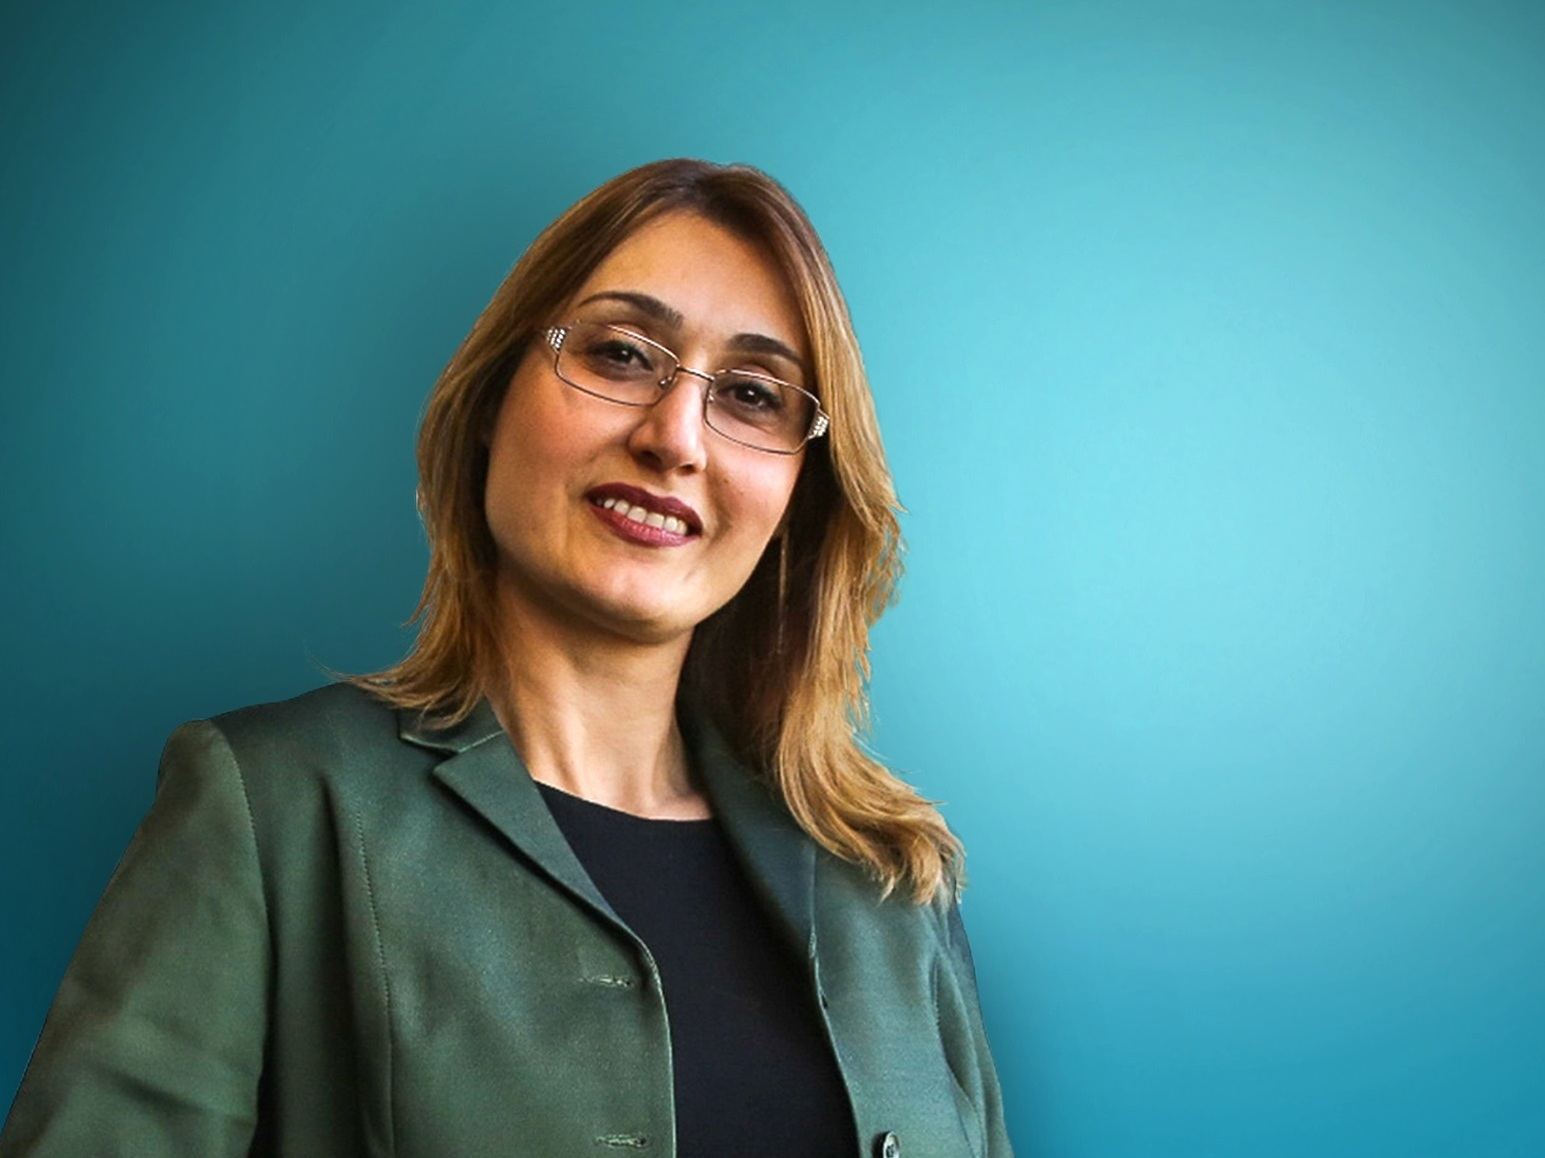 Lida Moslehi - Head of Delivery (APAC)